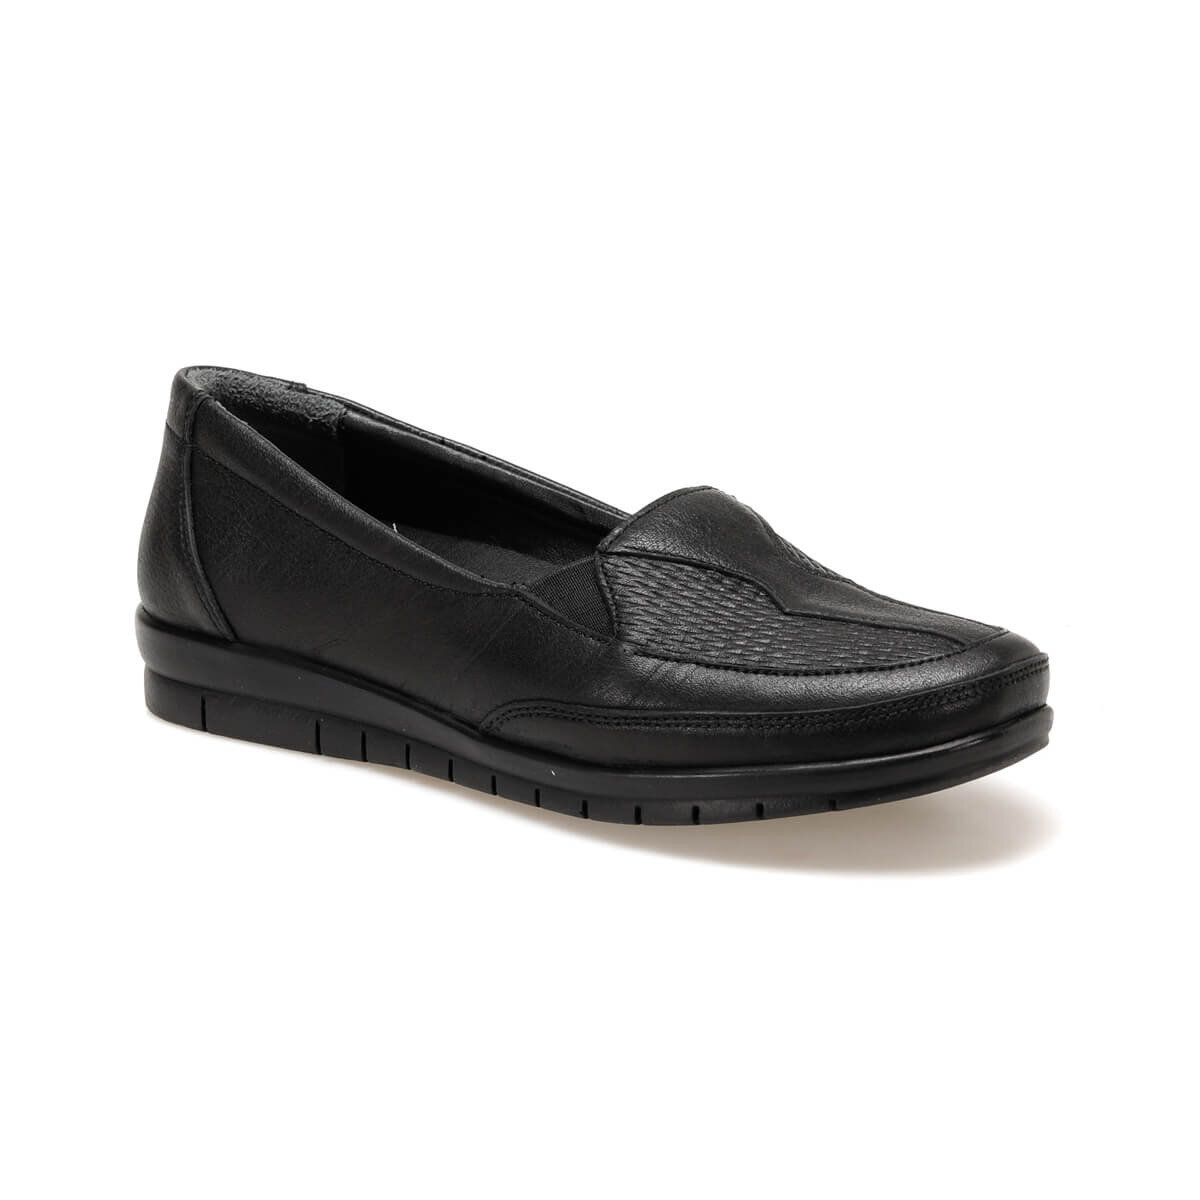 FLO 82.110217.Z Black Women Shoes Polaris 5 Point